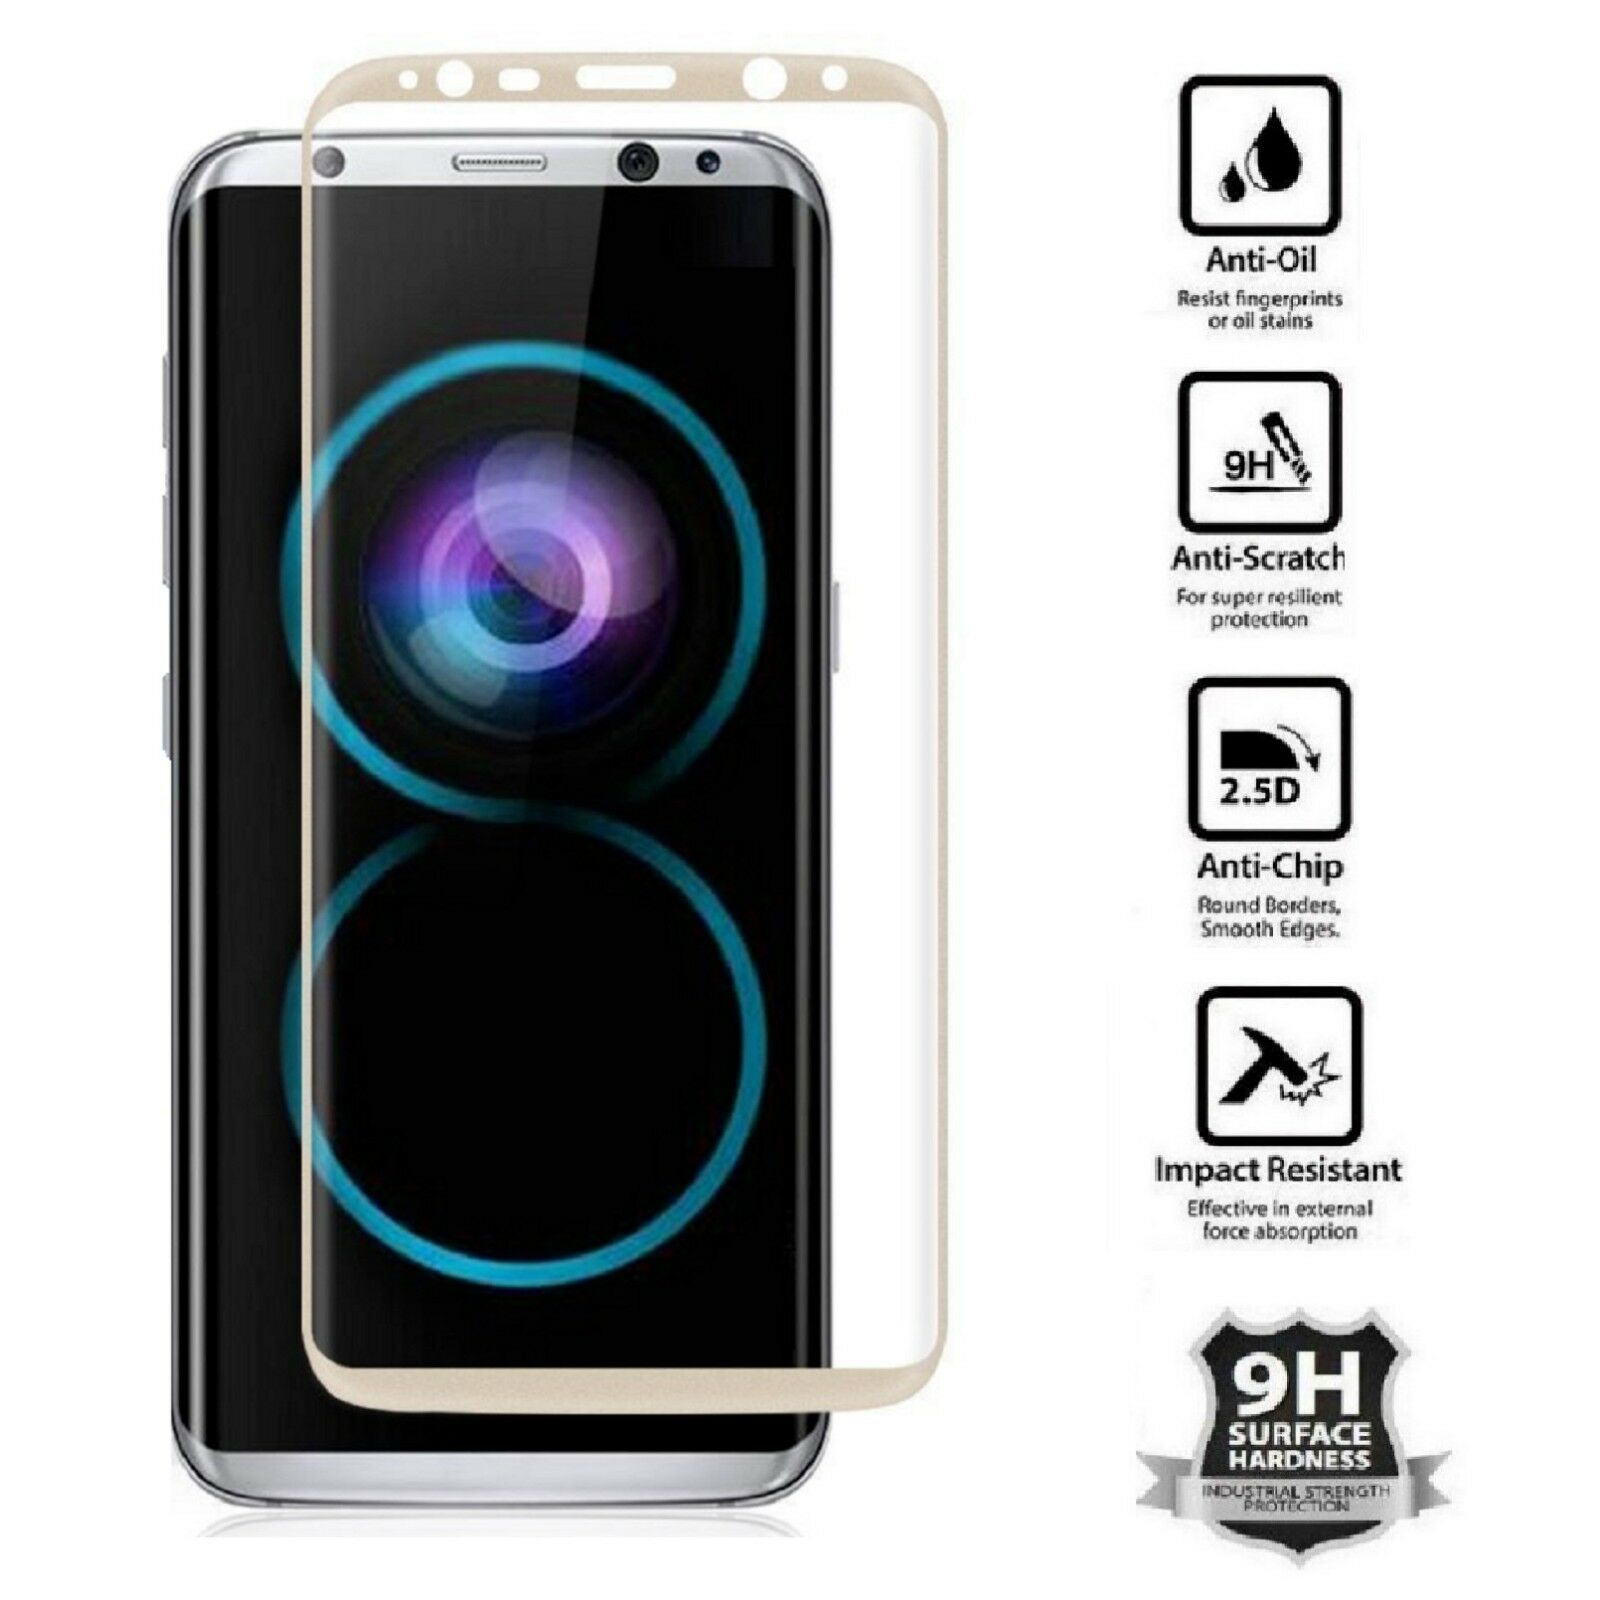 Купить MagicGuardz® Platinum Series For Samsung Galaxy S8,S8+, S9, S9+, Note 8, Note 9 - Samsung Galaxy S9 S8 Plus Note 8 9 4D Full Cover Tempered Glass Screen Protector